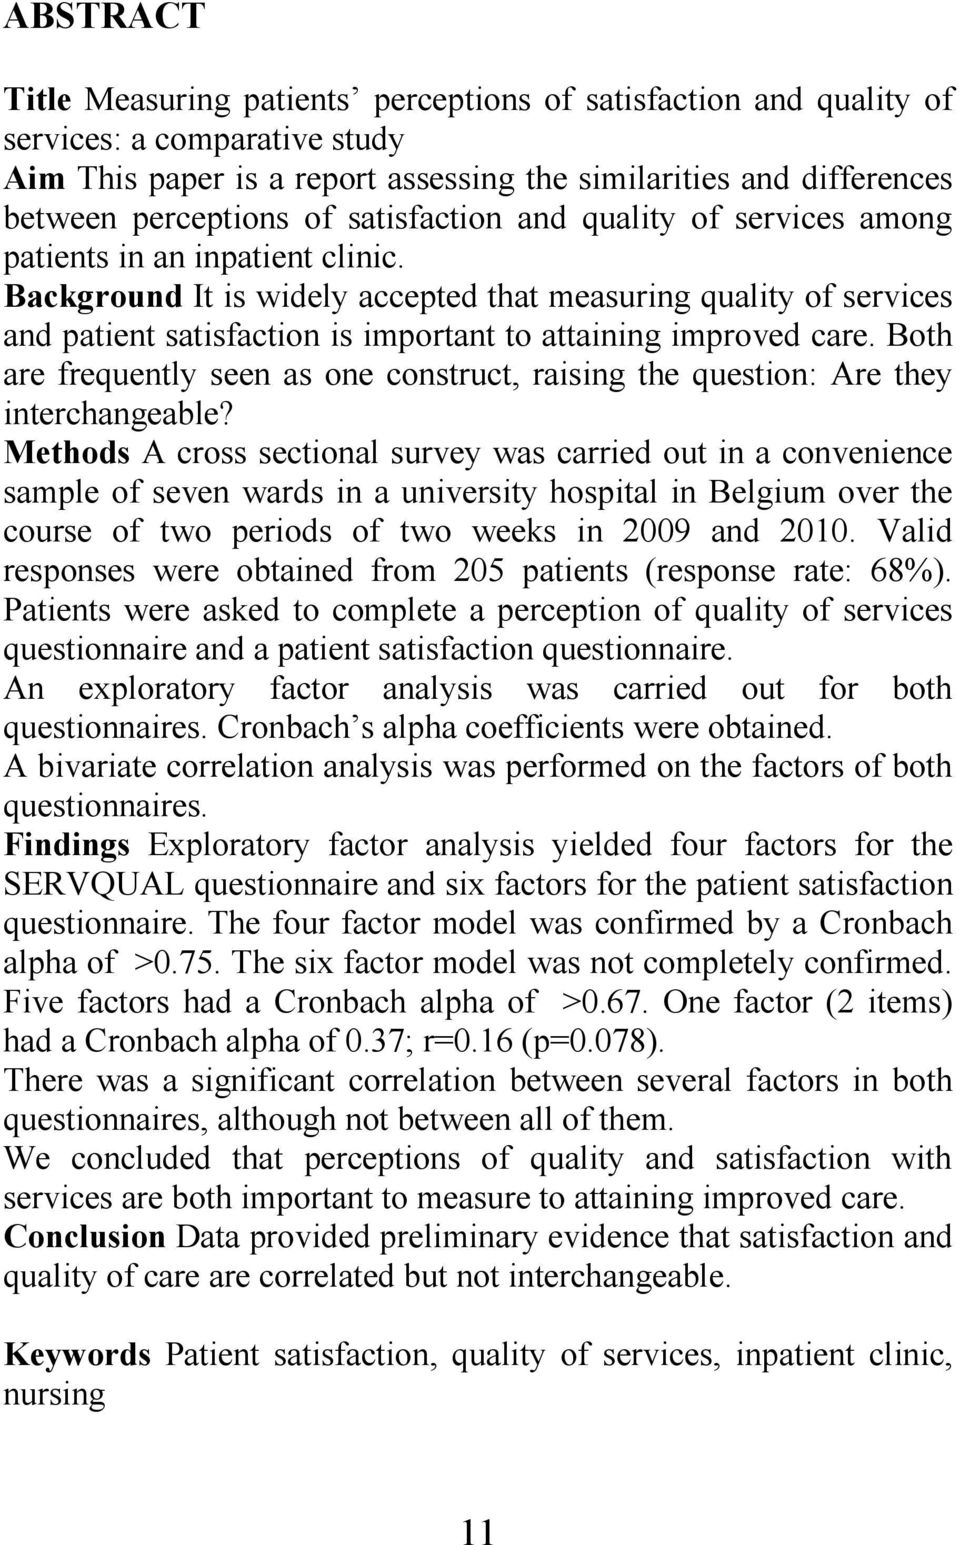 Background It is widely accepted that measuring quality of services and patient satisfaction is important to attaining improved care.